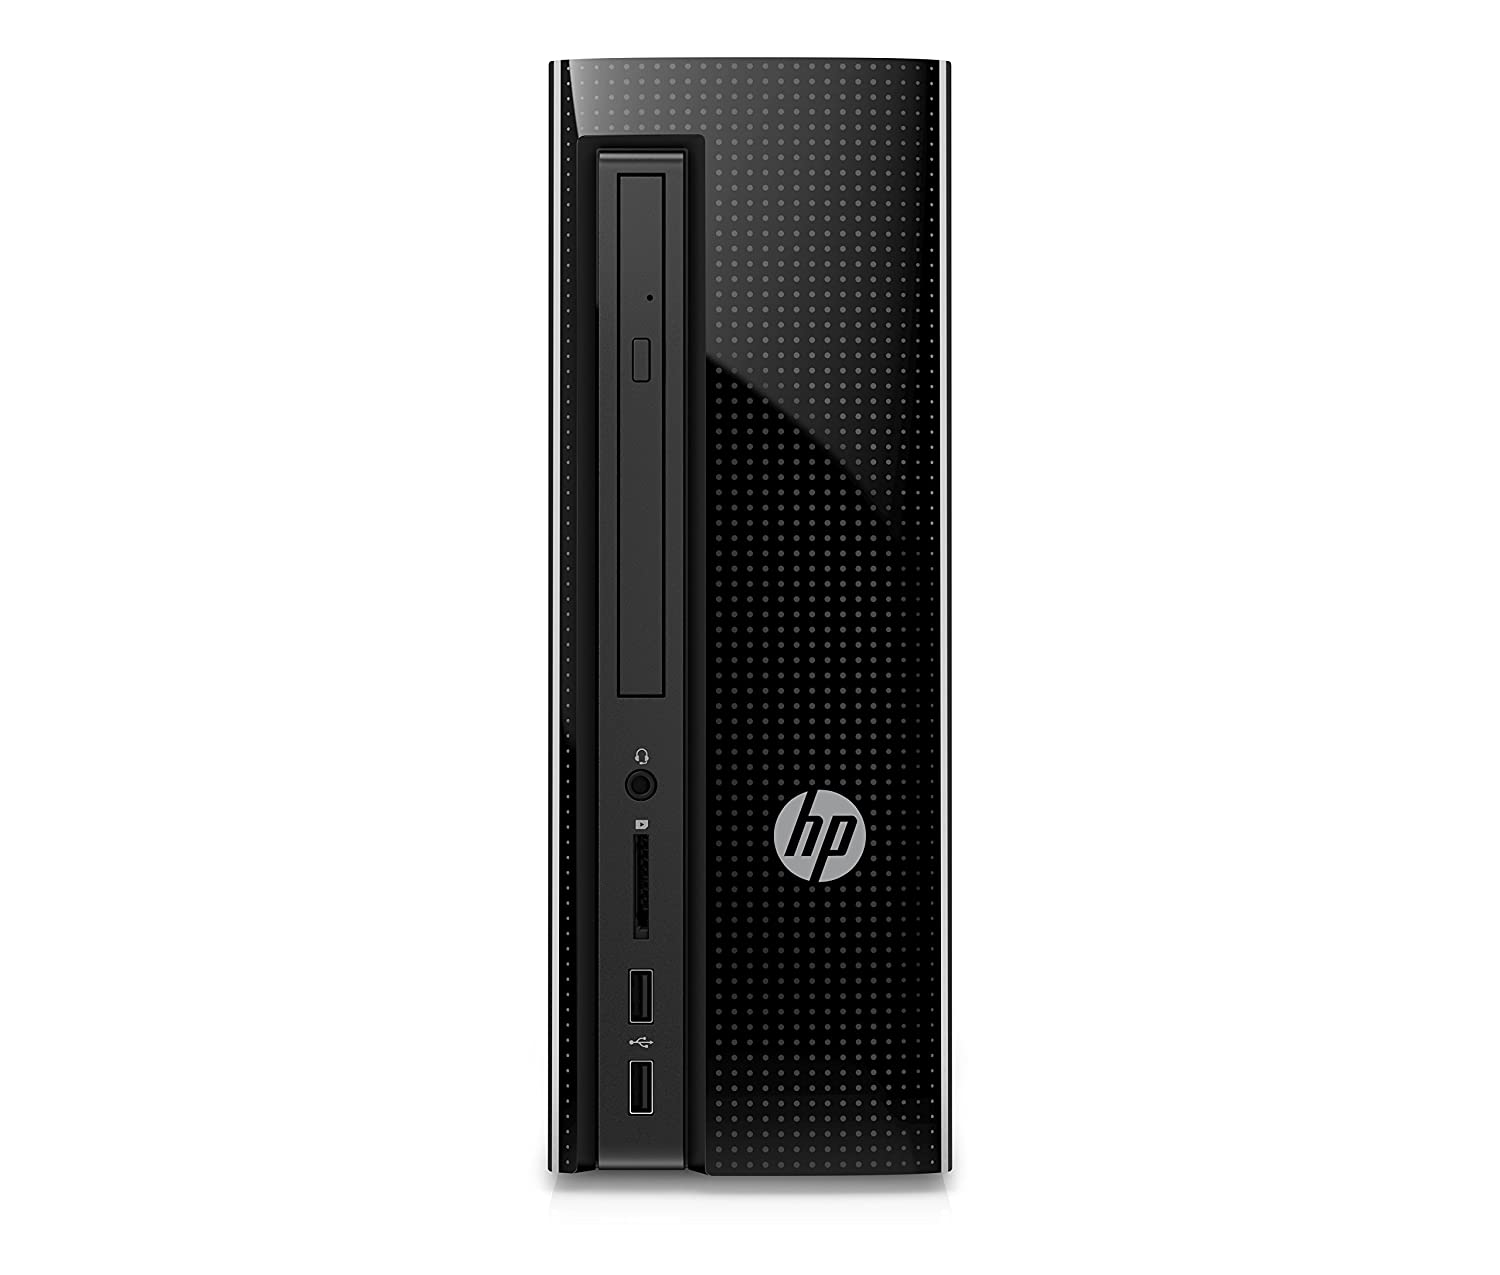 HP Slimline 260-a110nl 1,6 GHz Intel® Pentium® J3710 Negro Mini Tower PC - Ordenador de sobremesa (1,6 GHz, Intel® Pentium®, 8 GB, 1000 GB, DVD Super Multi, Windows 10 Home)